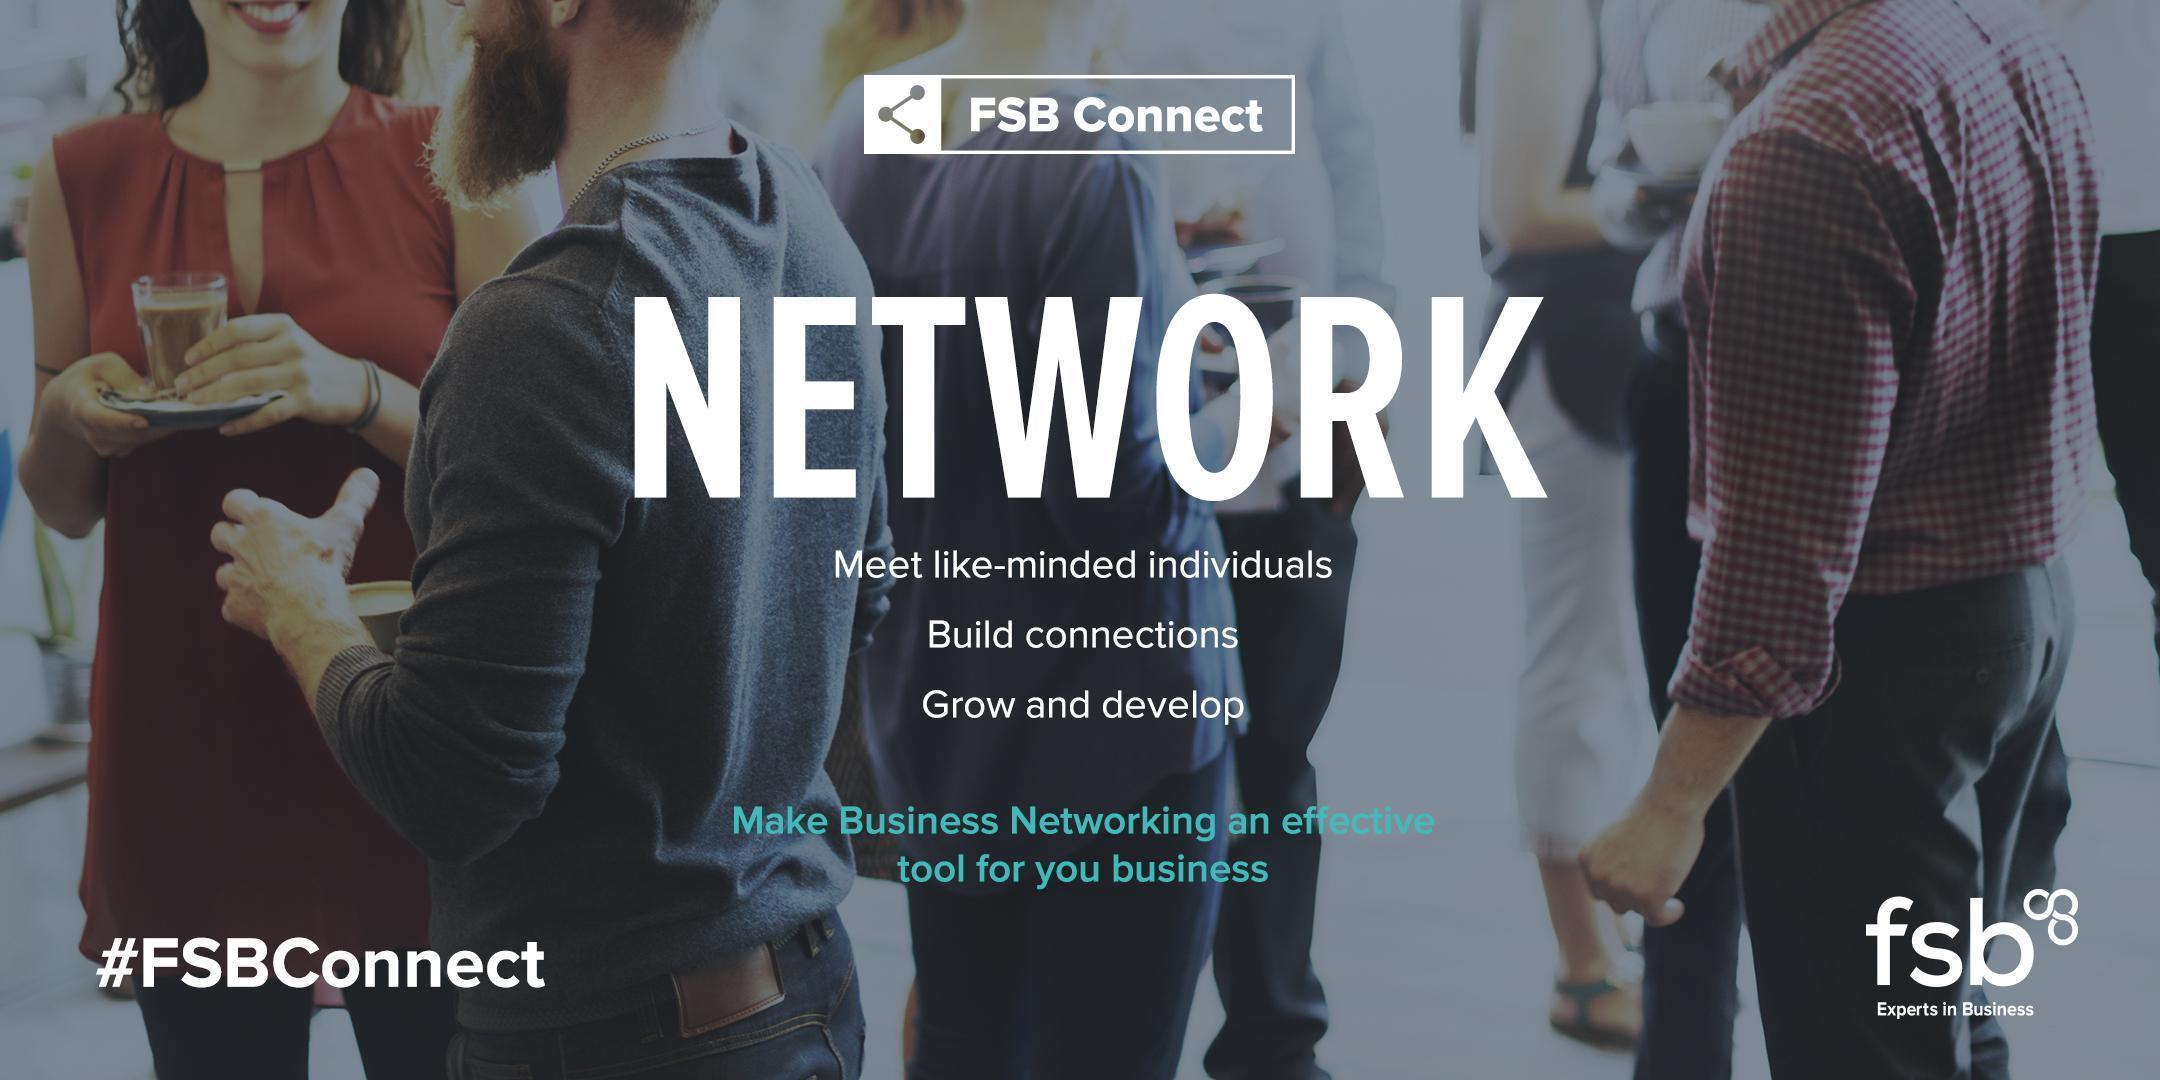 #FSBConnect 'Network Bootle' #33-290617-050